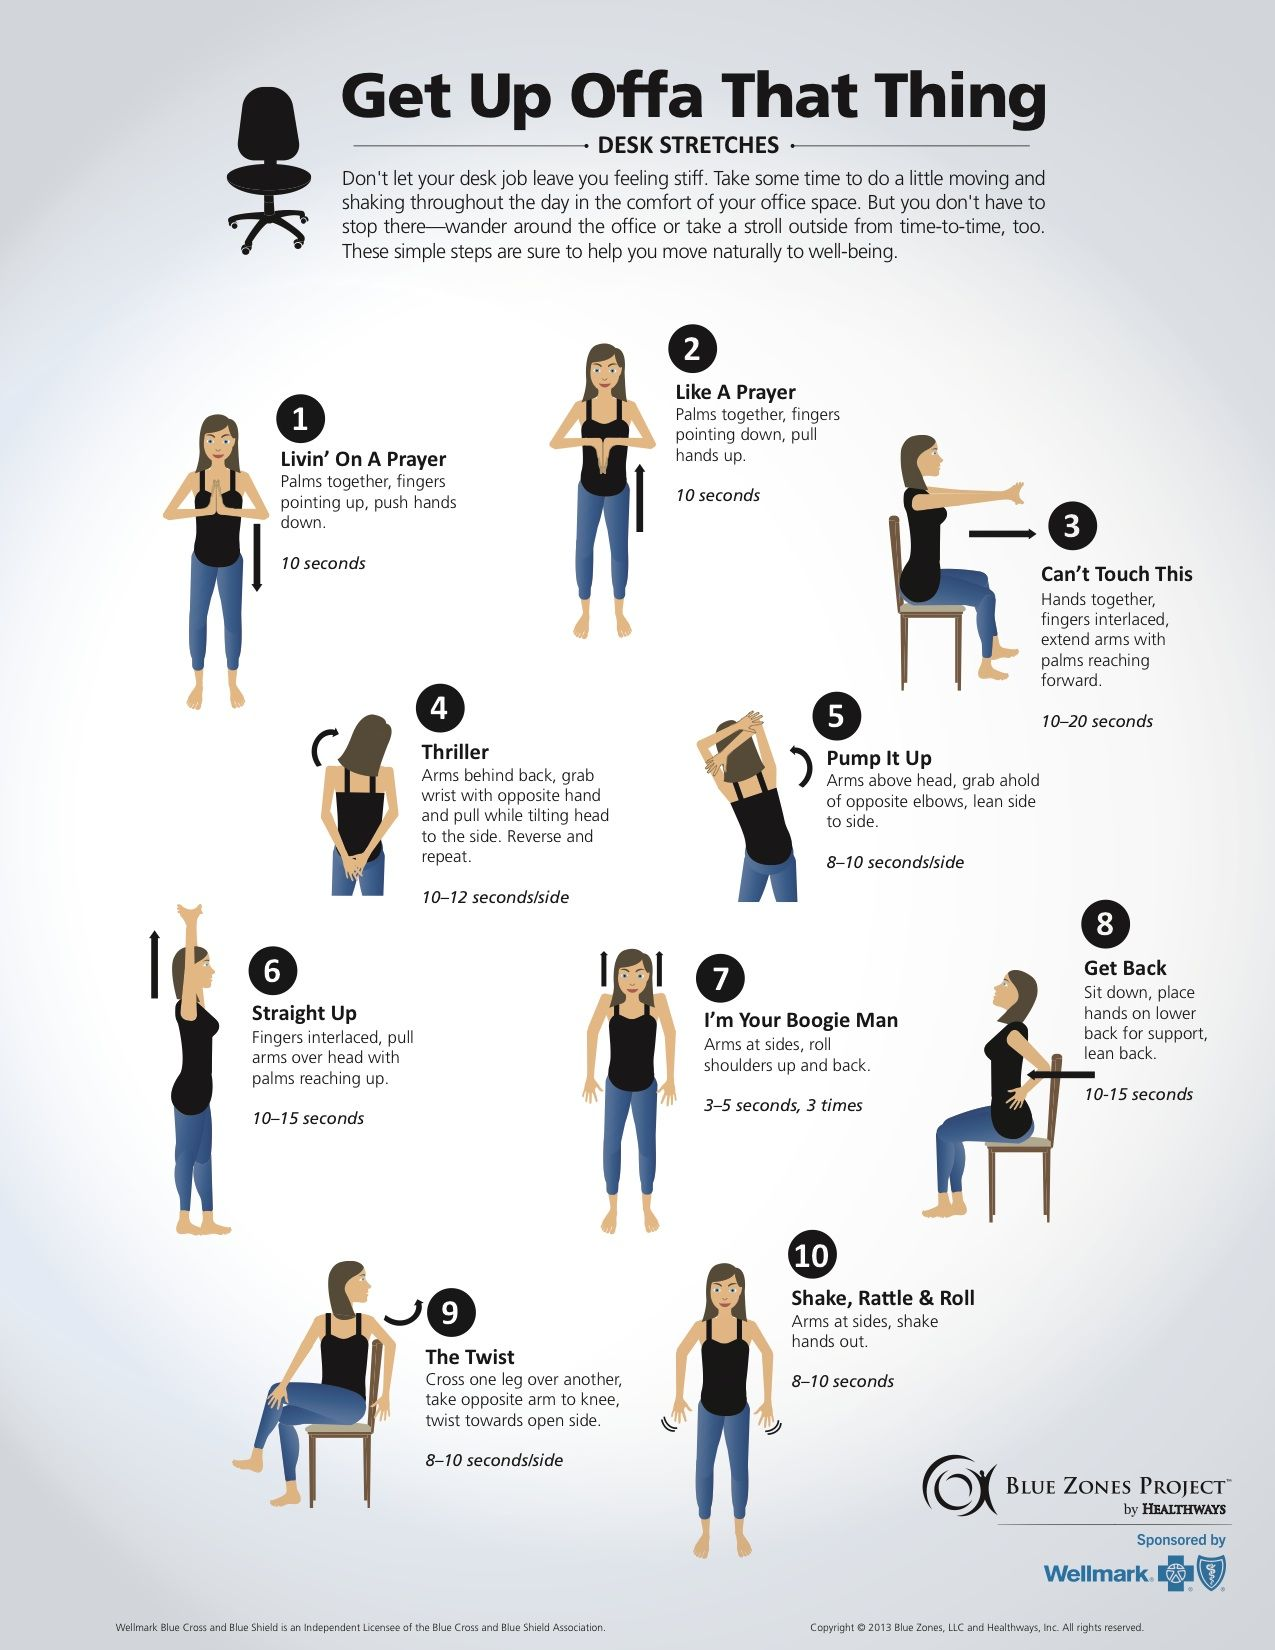 Wellness for Life Chiropractic DESK STRETCHES 2015